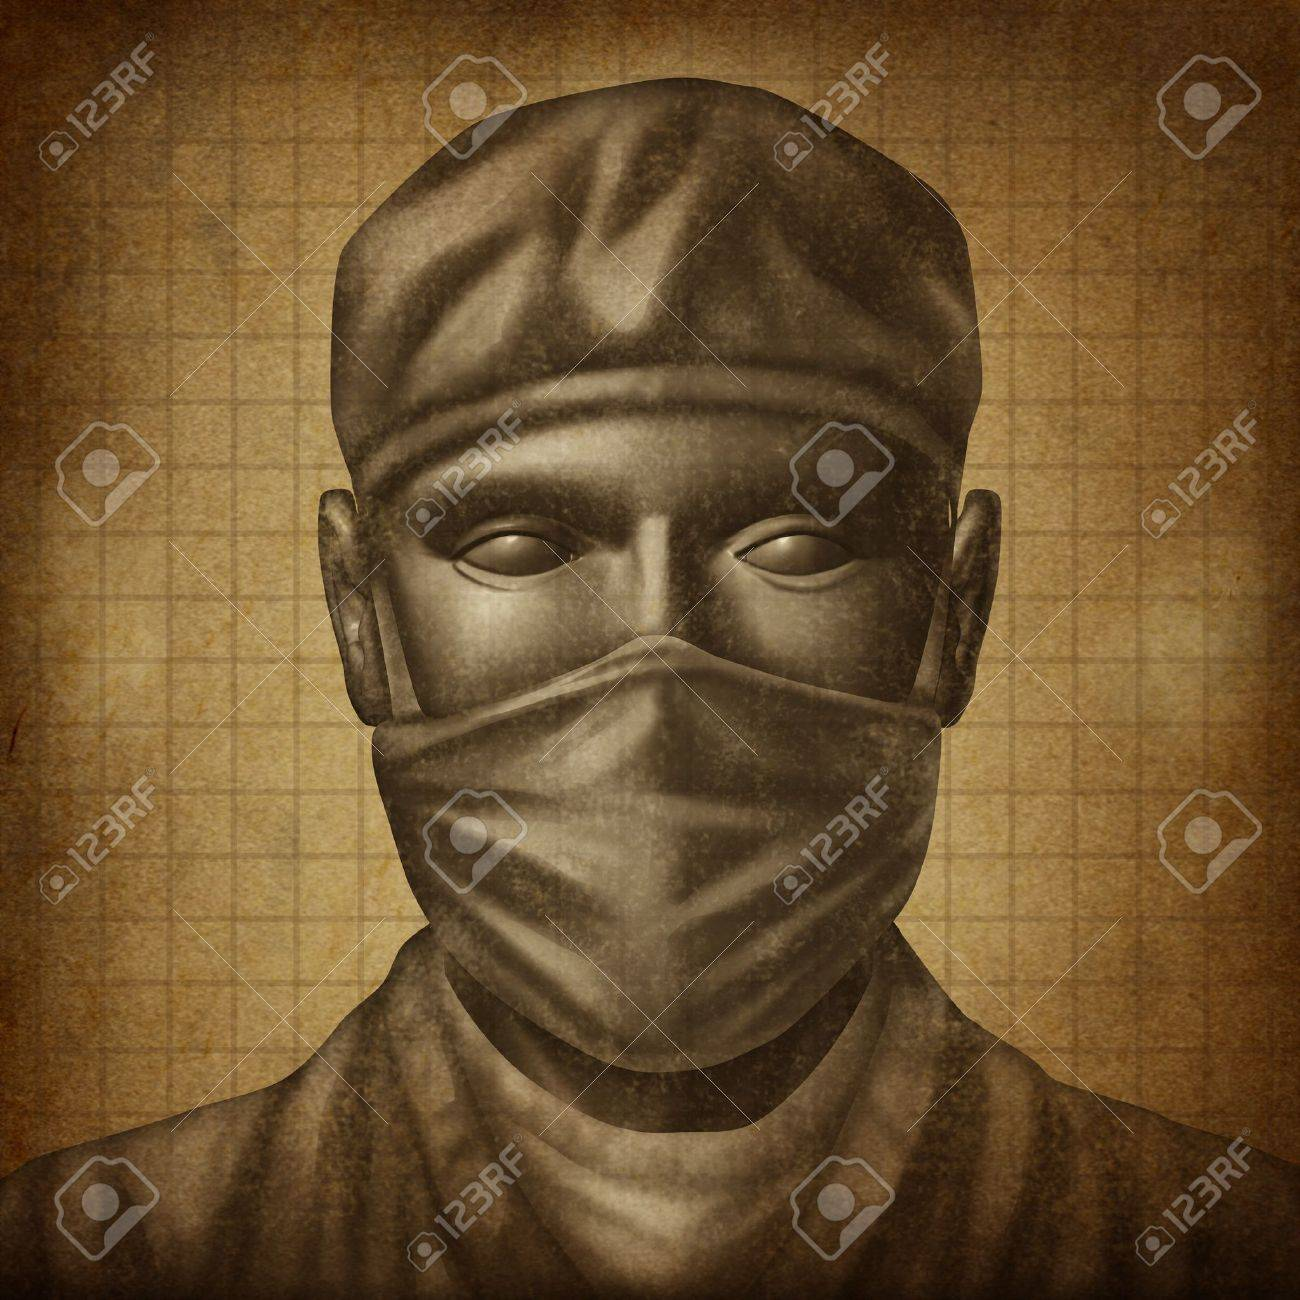 Doctor with a surgical Mask on an old grunge texture as a health care concept for medical emergency surgery and physician specialist in hospital services Stock Photo - 16689649